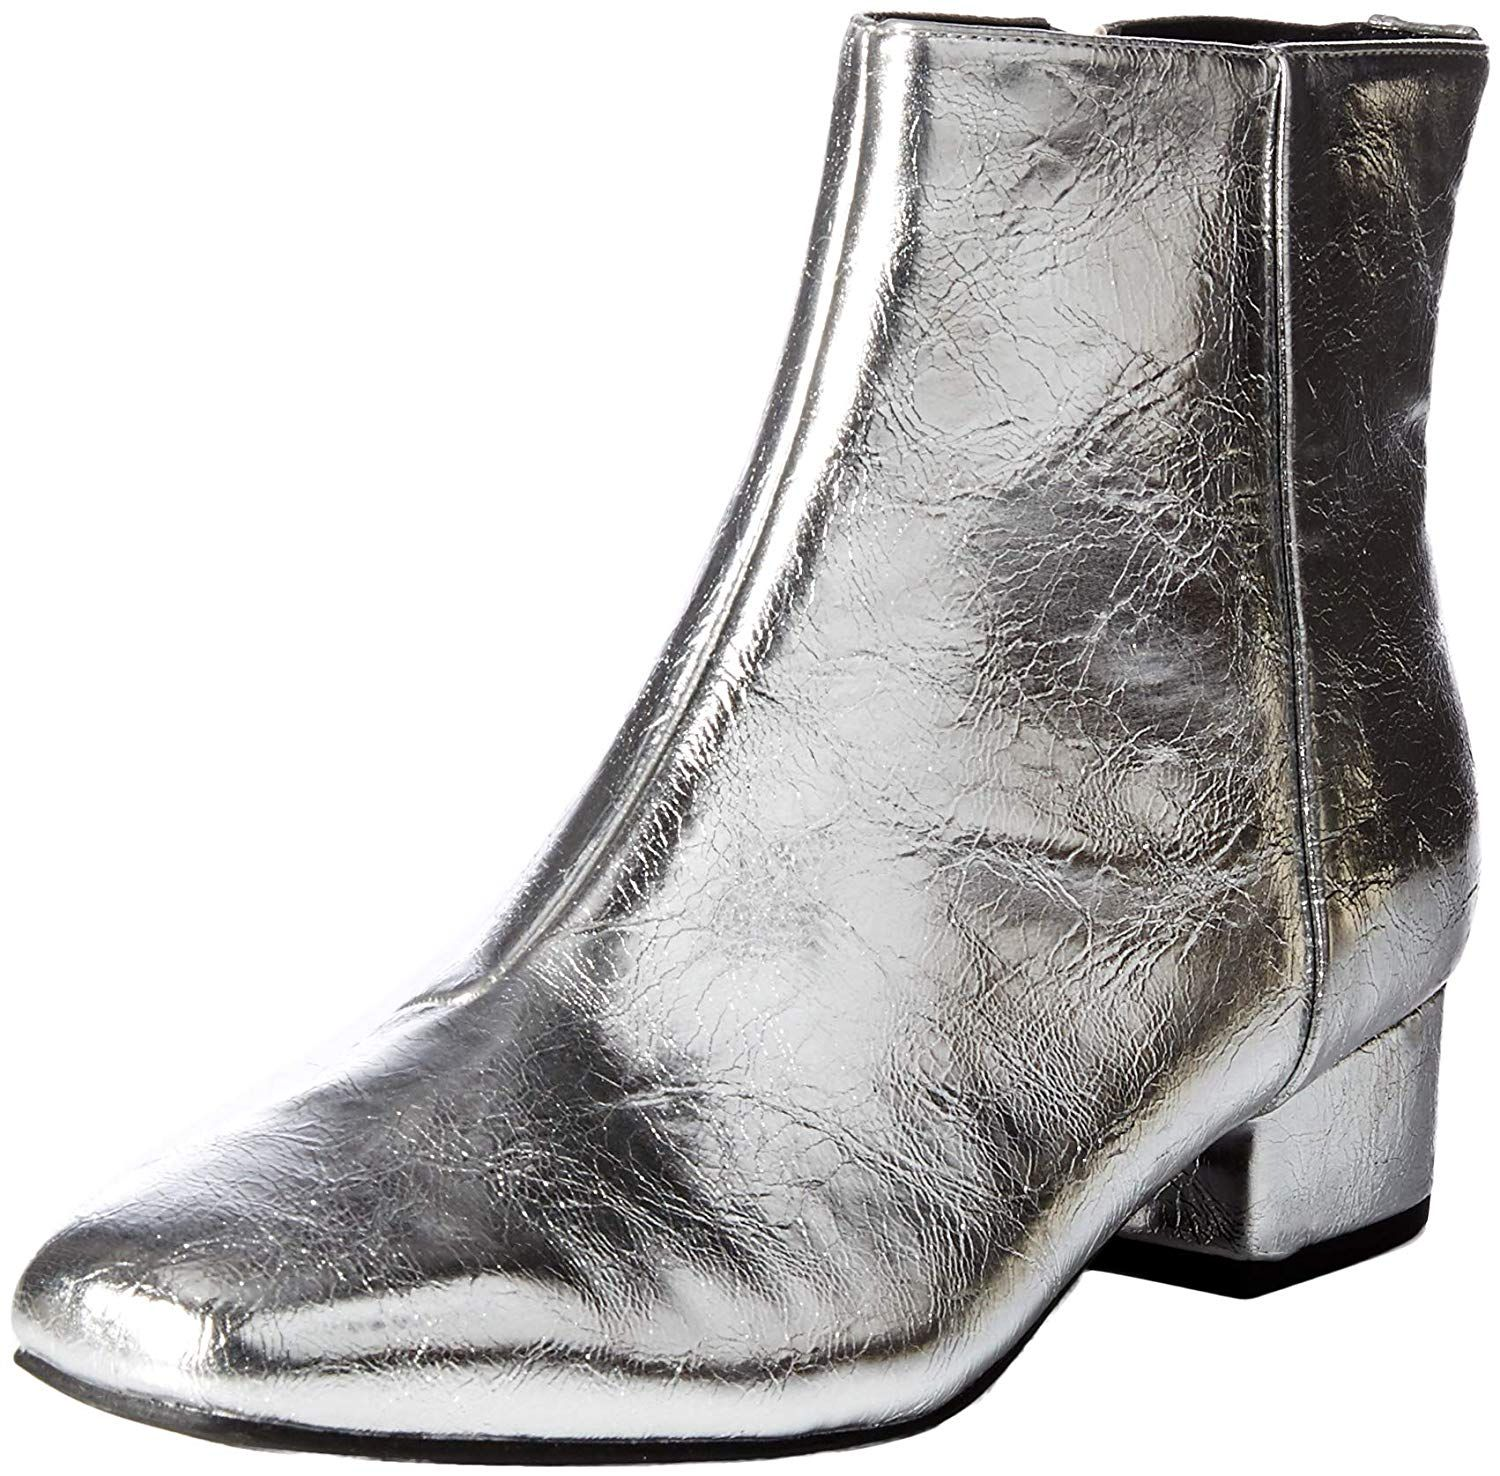 0f53918f0 Circus by Sam Edelman Women s Lyndsey Fashion Boot     We appreciate you  for having visited our photo. (This is our affiliate link)   ...